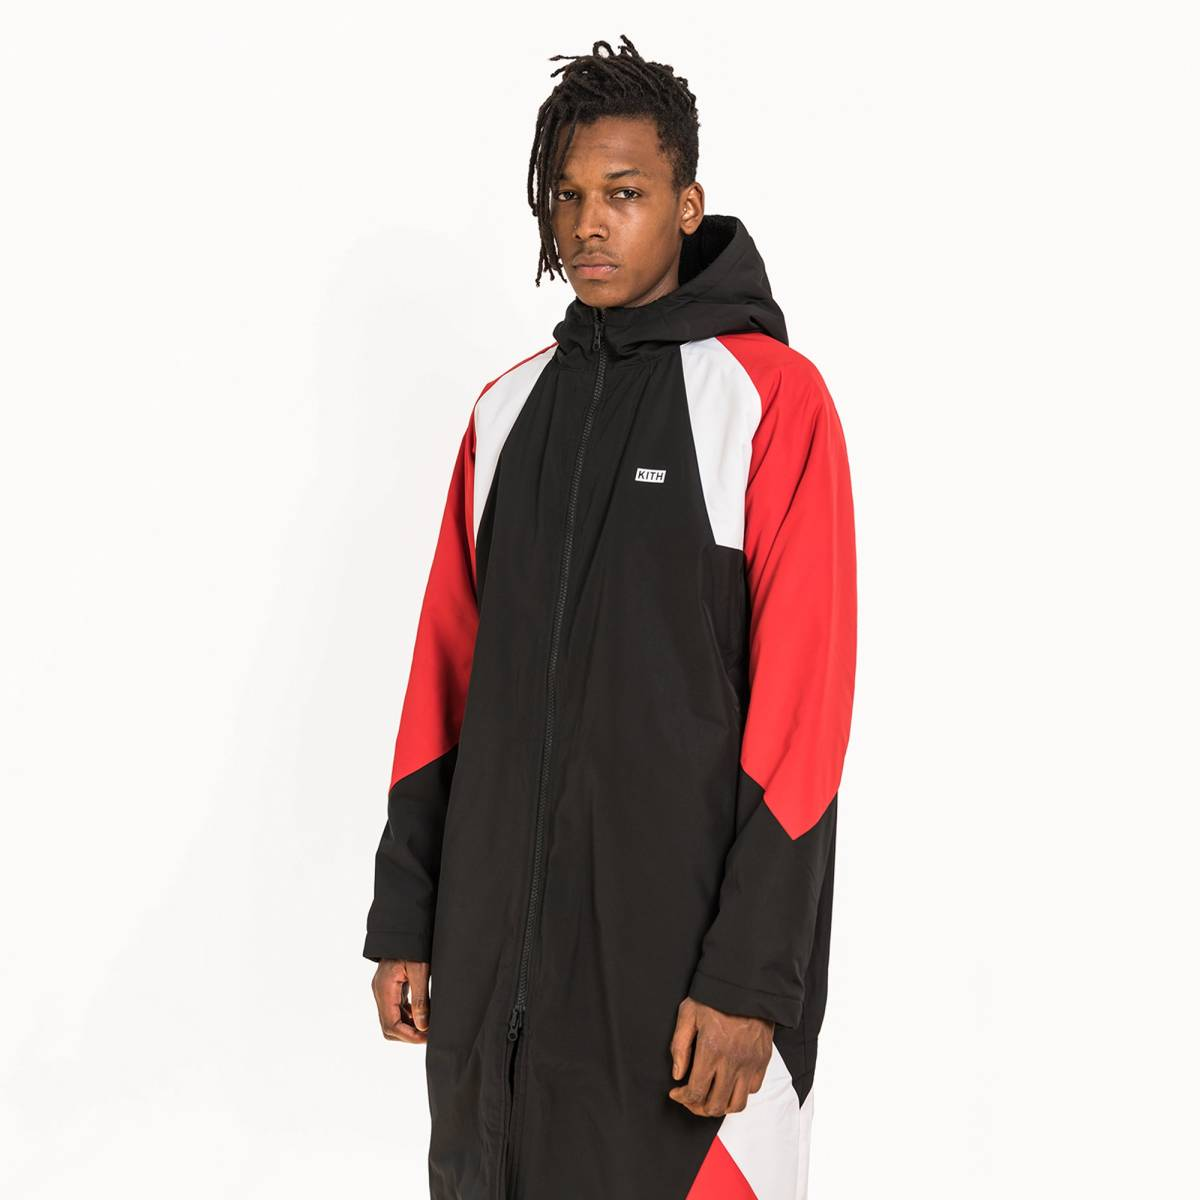 4bbf51606 即日発送/新品未使用 KITH NIKE SHERPA SIDELINE COAT BLACK RED S size ナイキ 正規購入